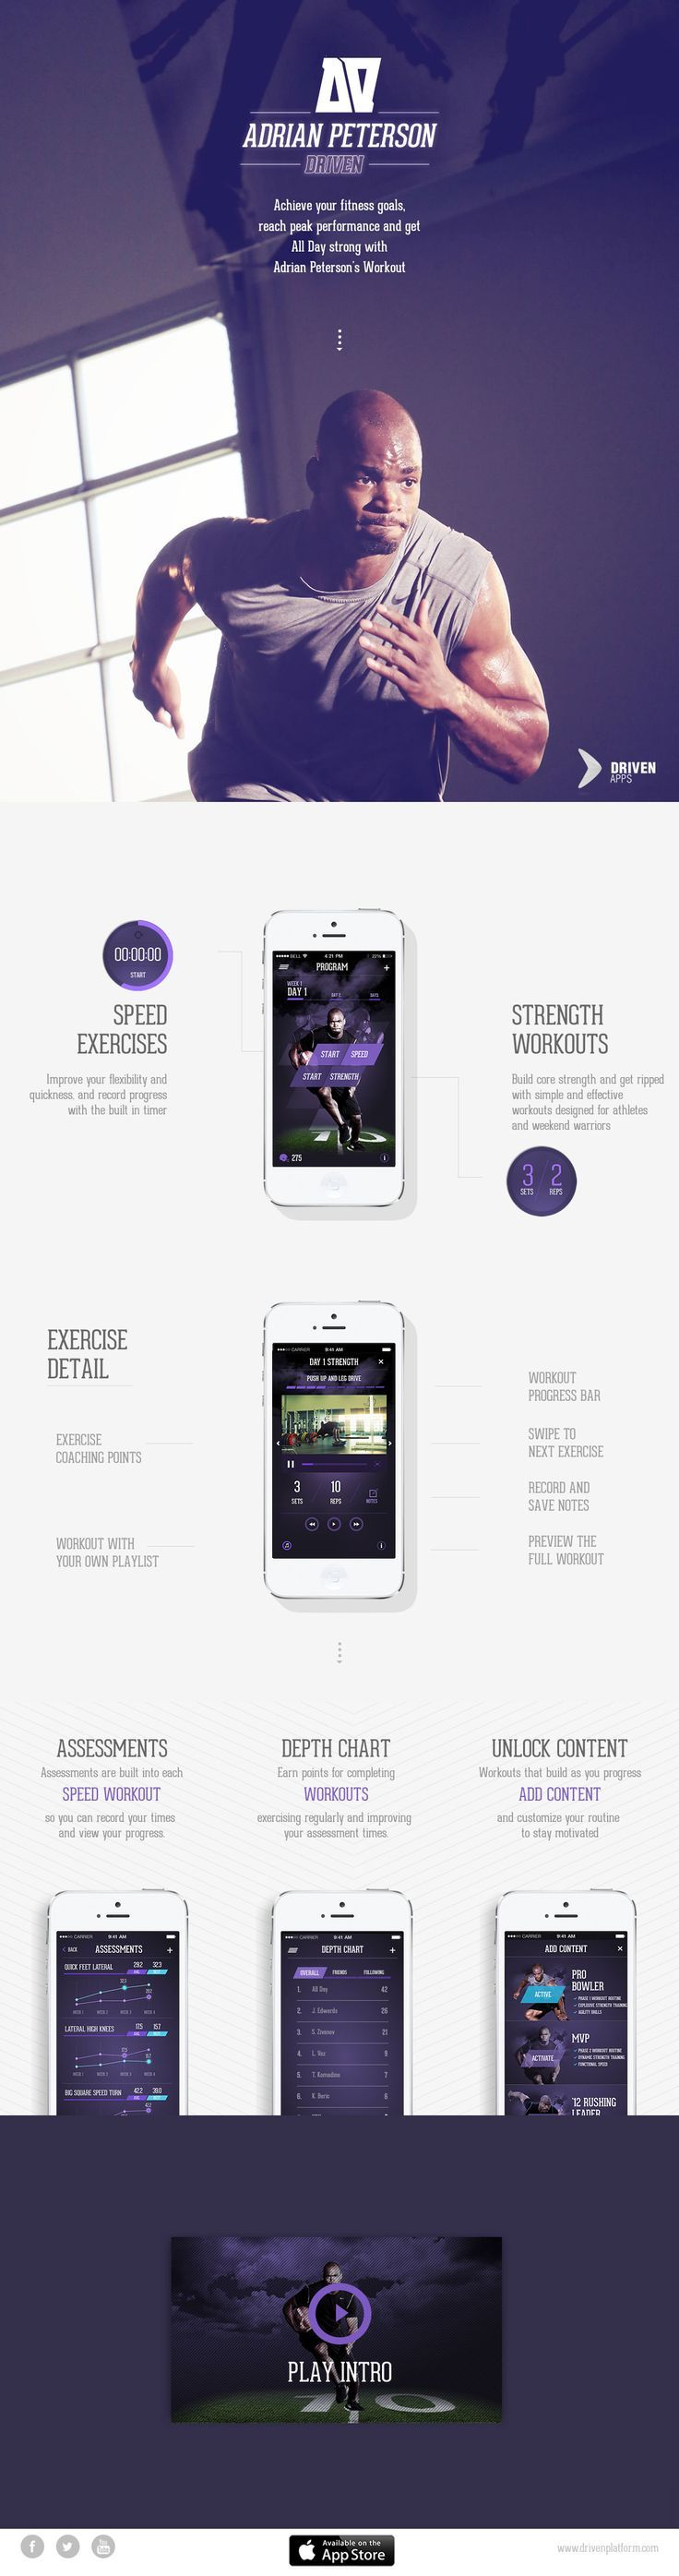 NFL's Adrian Peterson has launched a new fitness iPhone App in a neat one pager. I really think the site would be so much more stylish without the white page border but it deserves a feature with the slick manner it reveals the screenshots as you scroll.. If you like UX, design, or design thinking, check out theuxblog.com